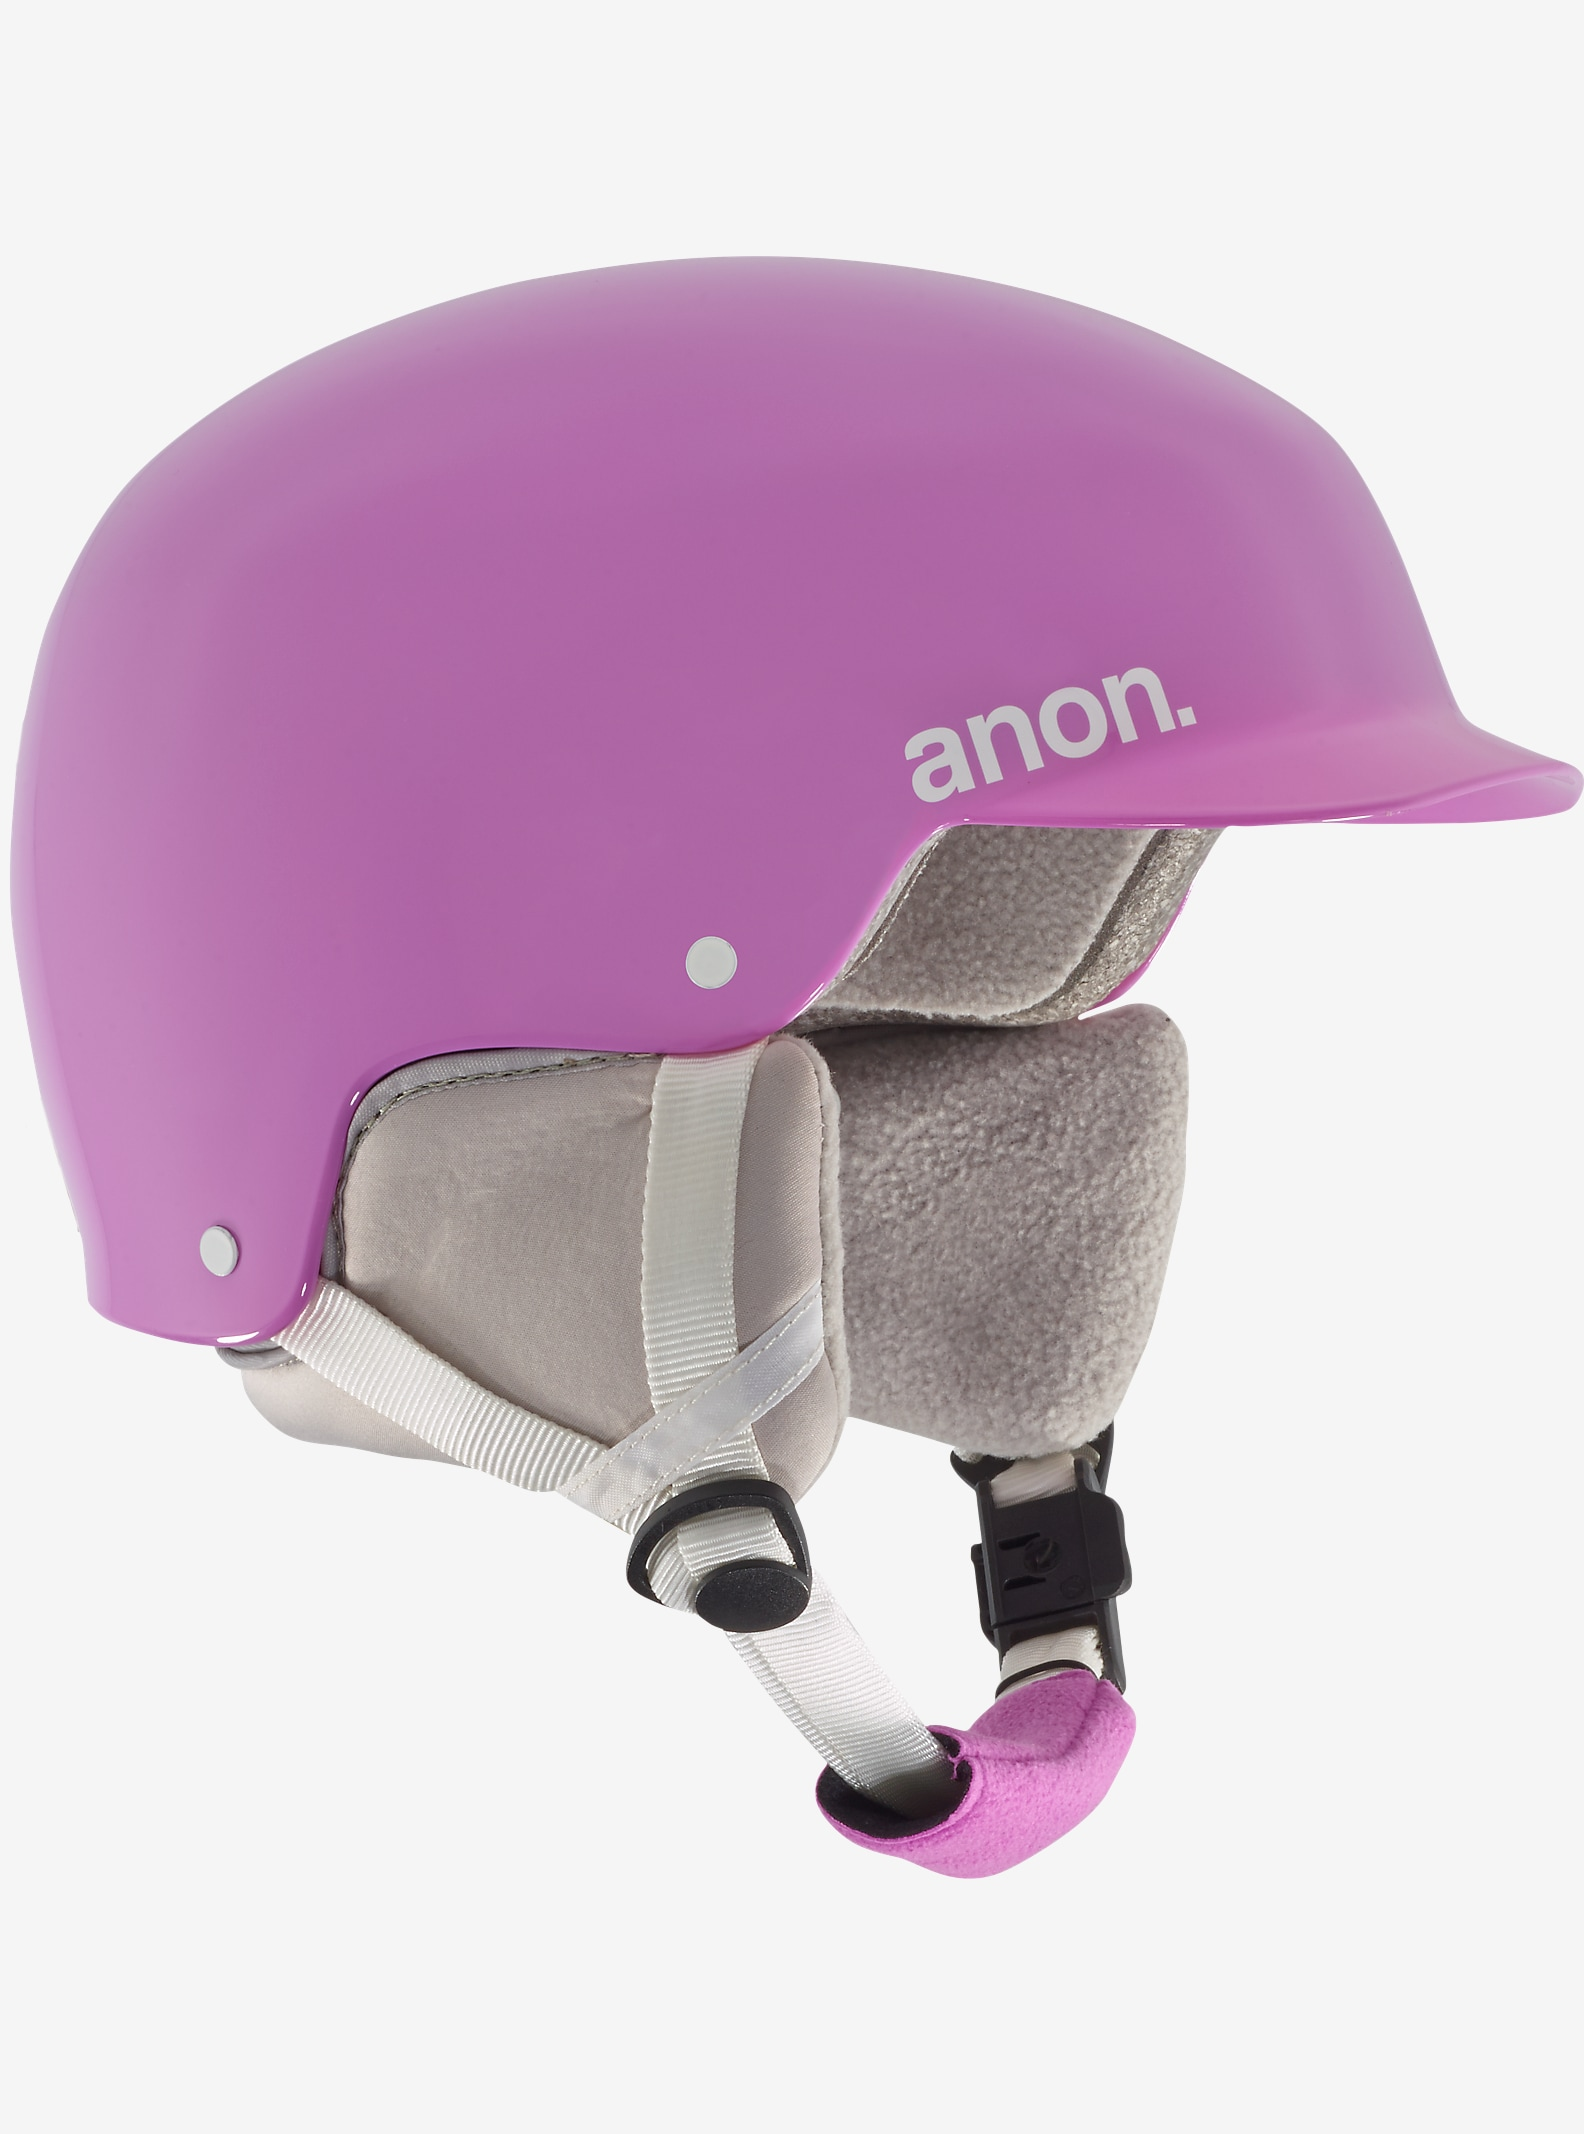 anon. Girls' Scout Helmet shown in Farie Pink